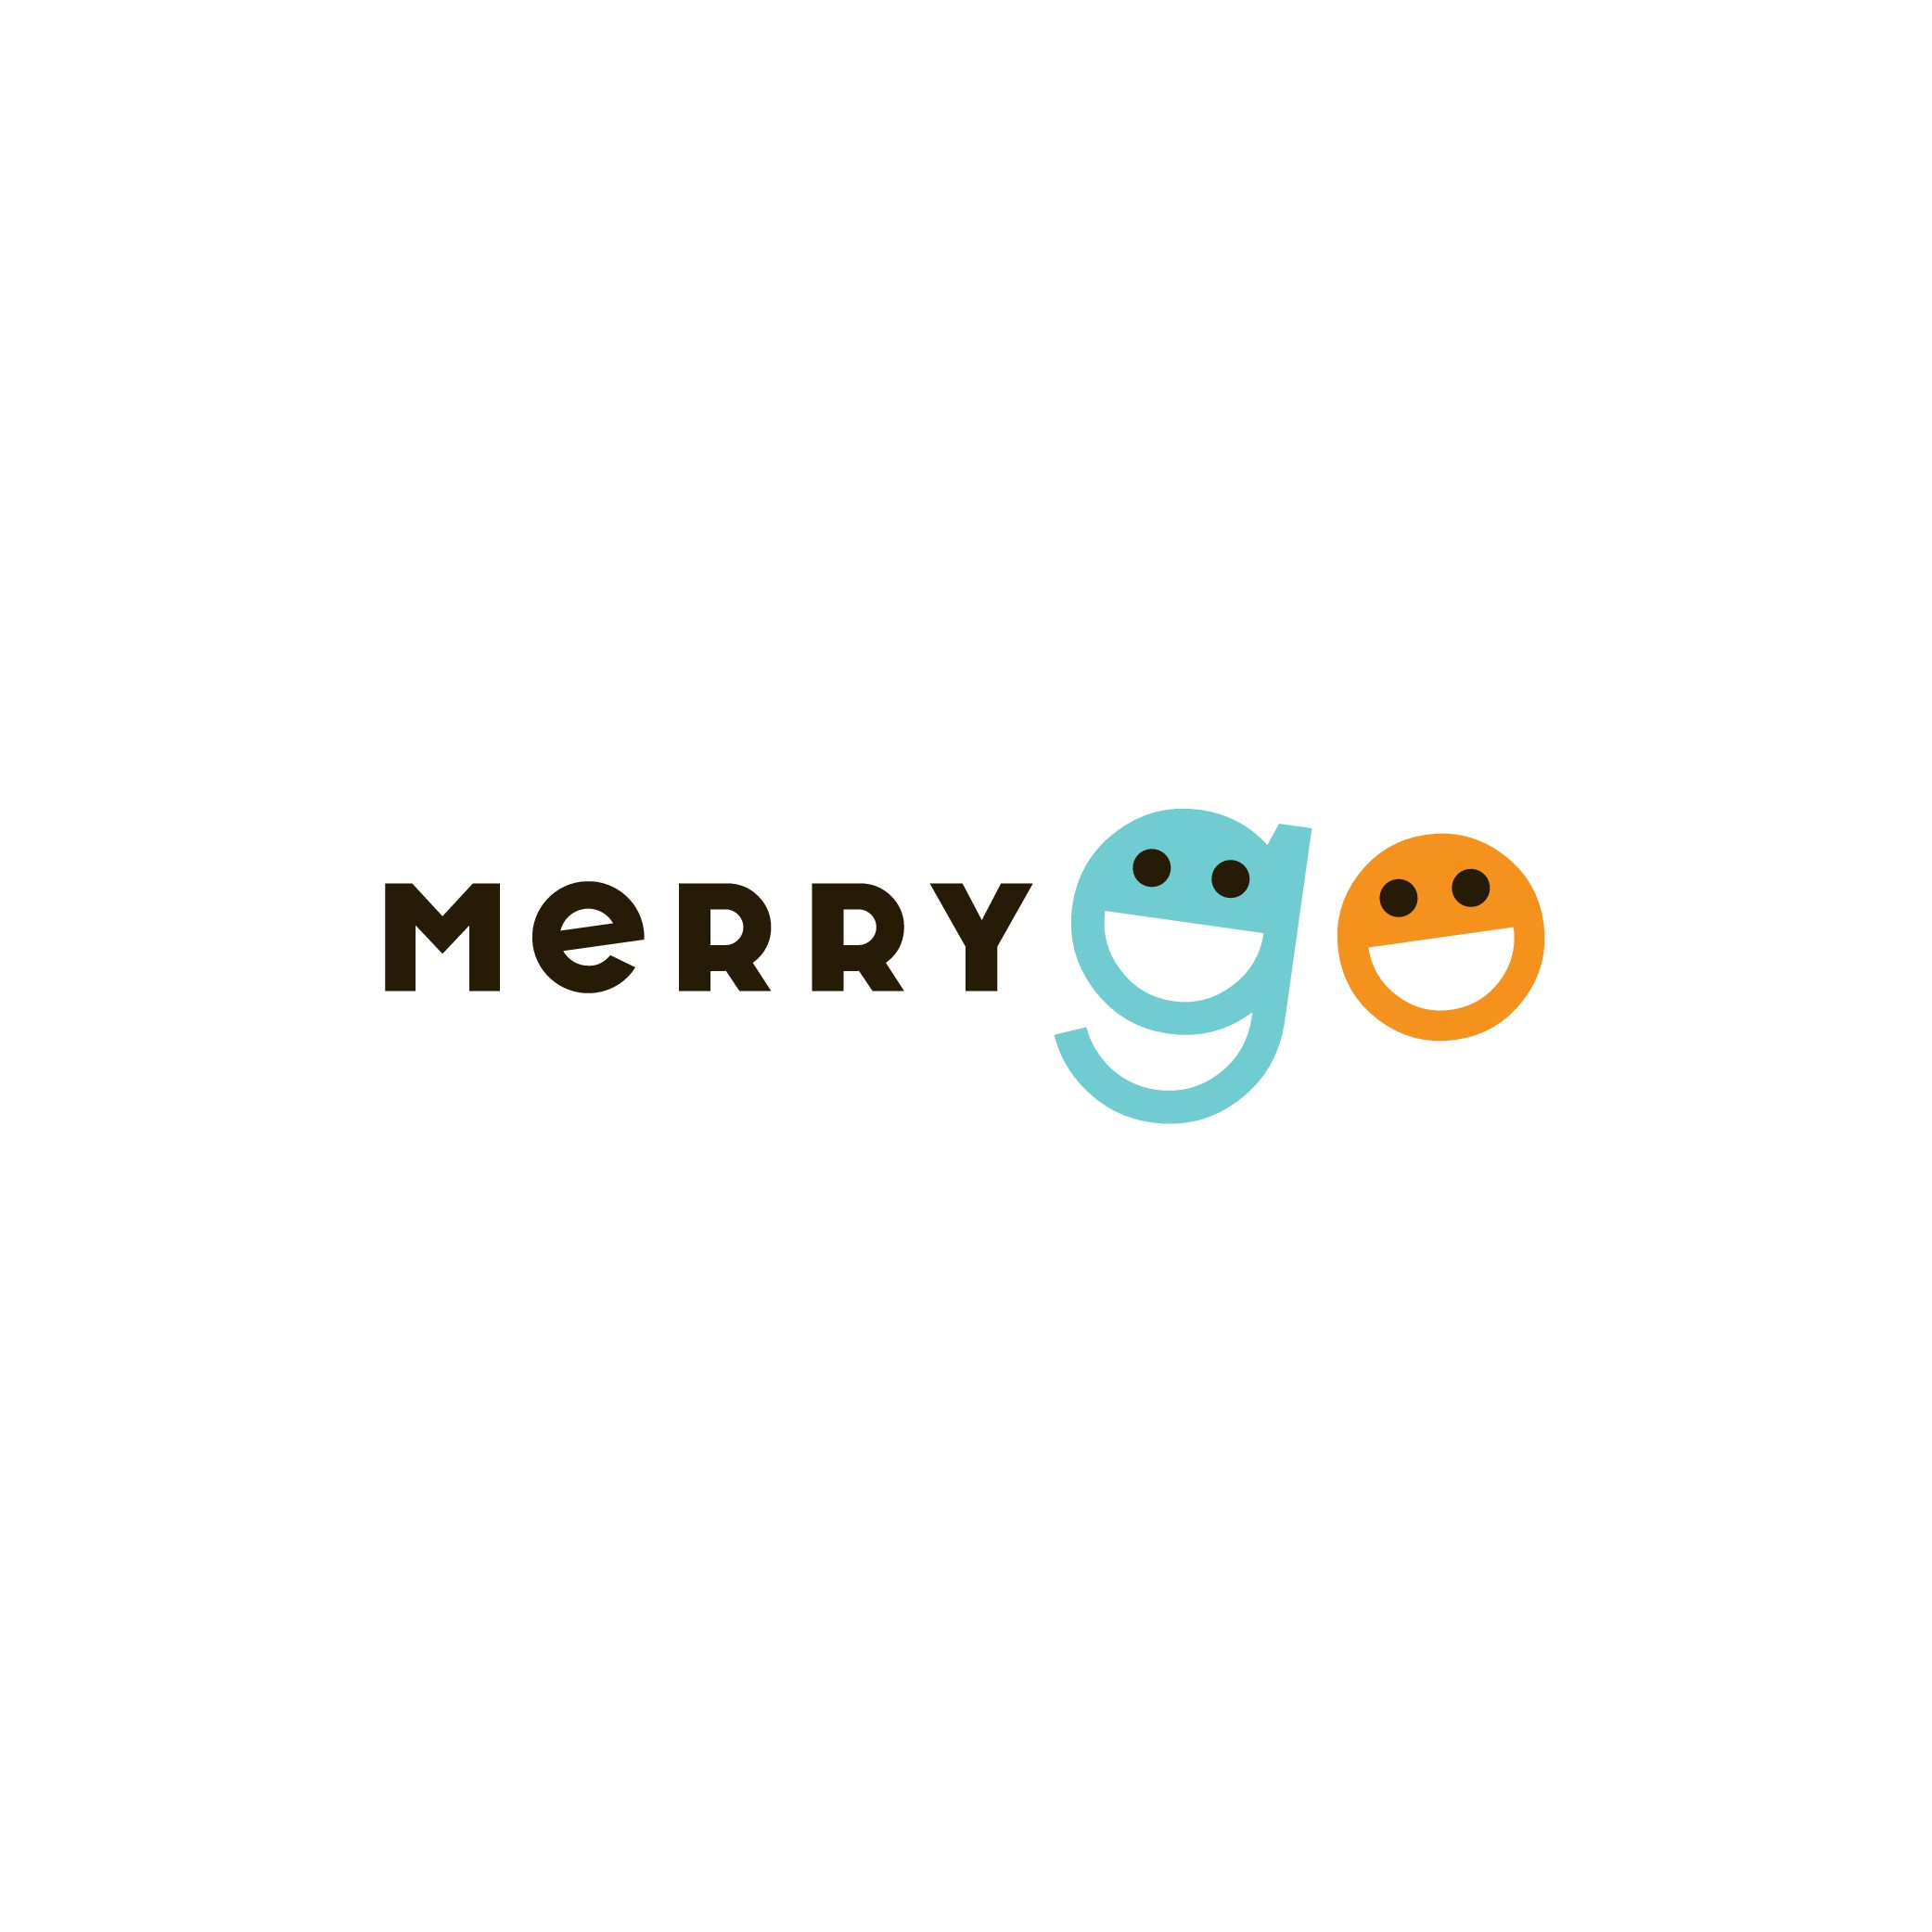 Fun, energetic logo needed for MerryGo, a children's toothbrush brand